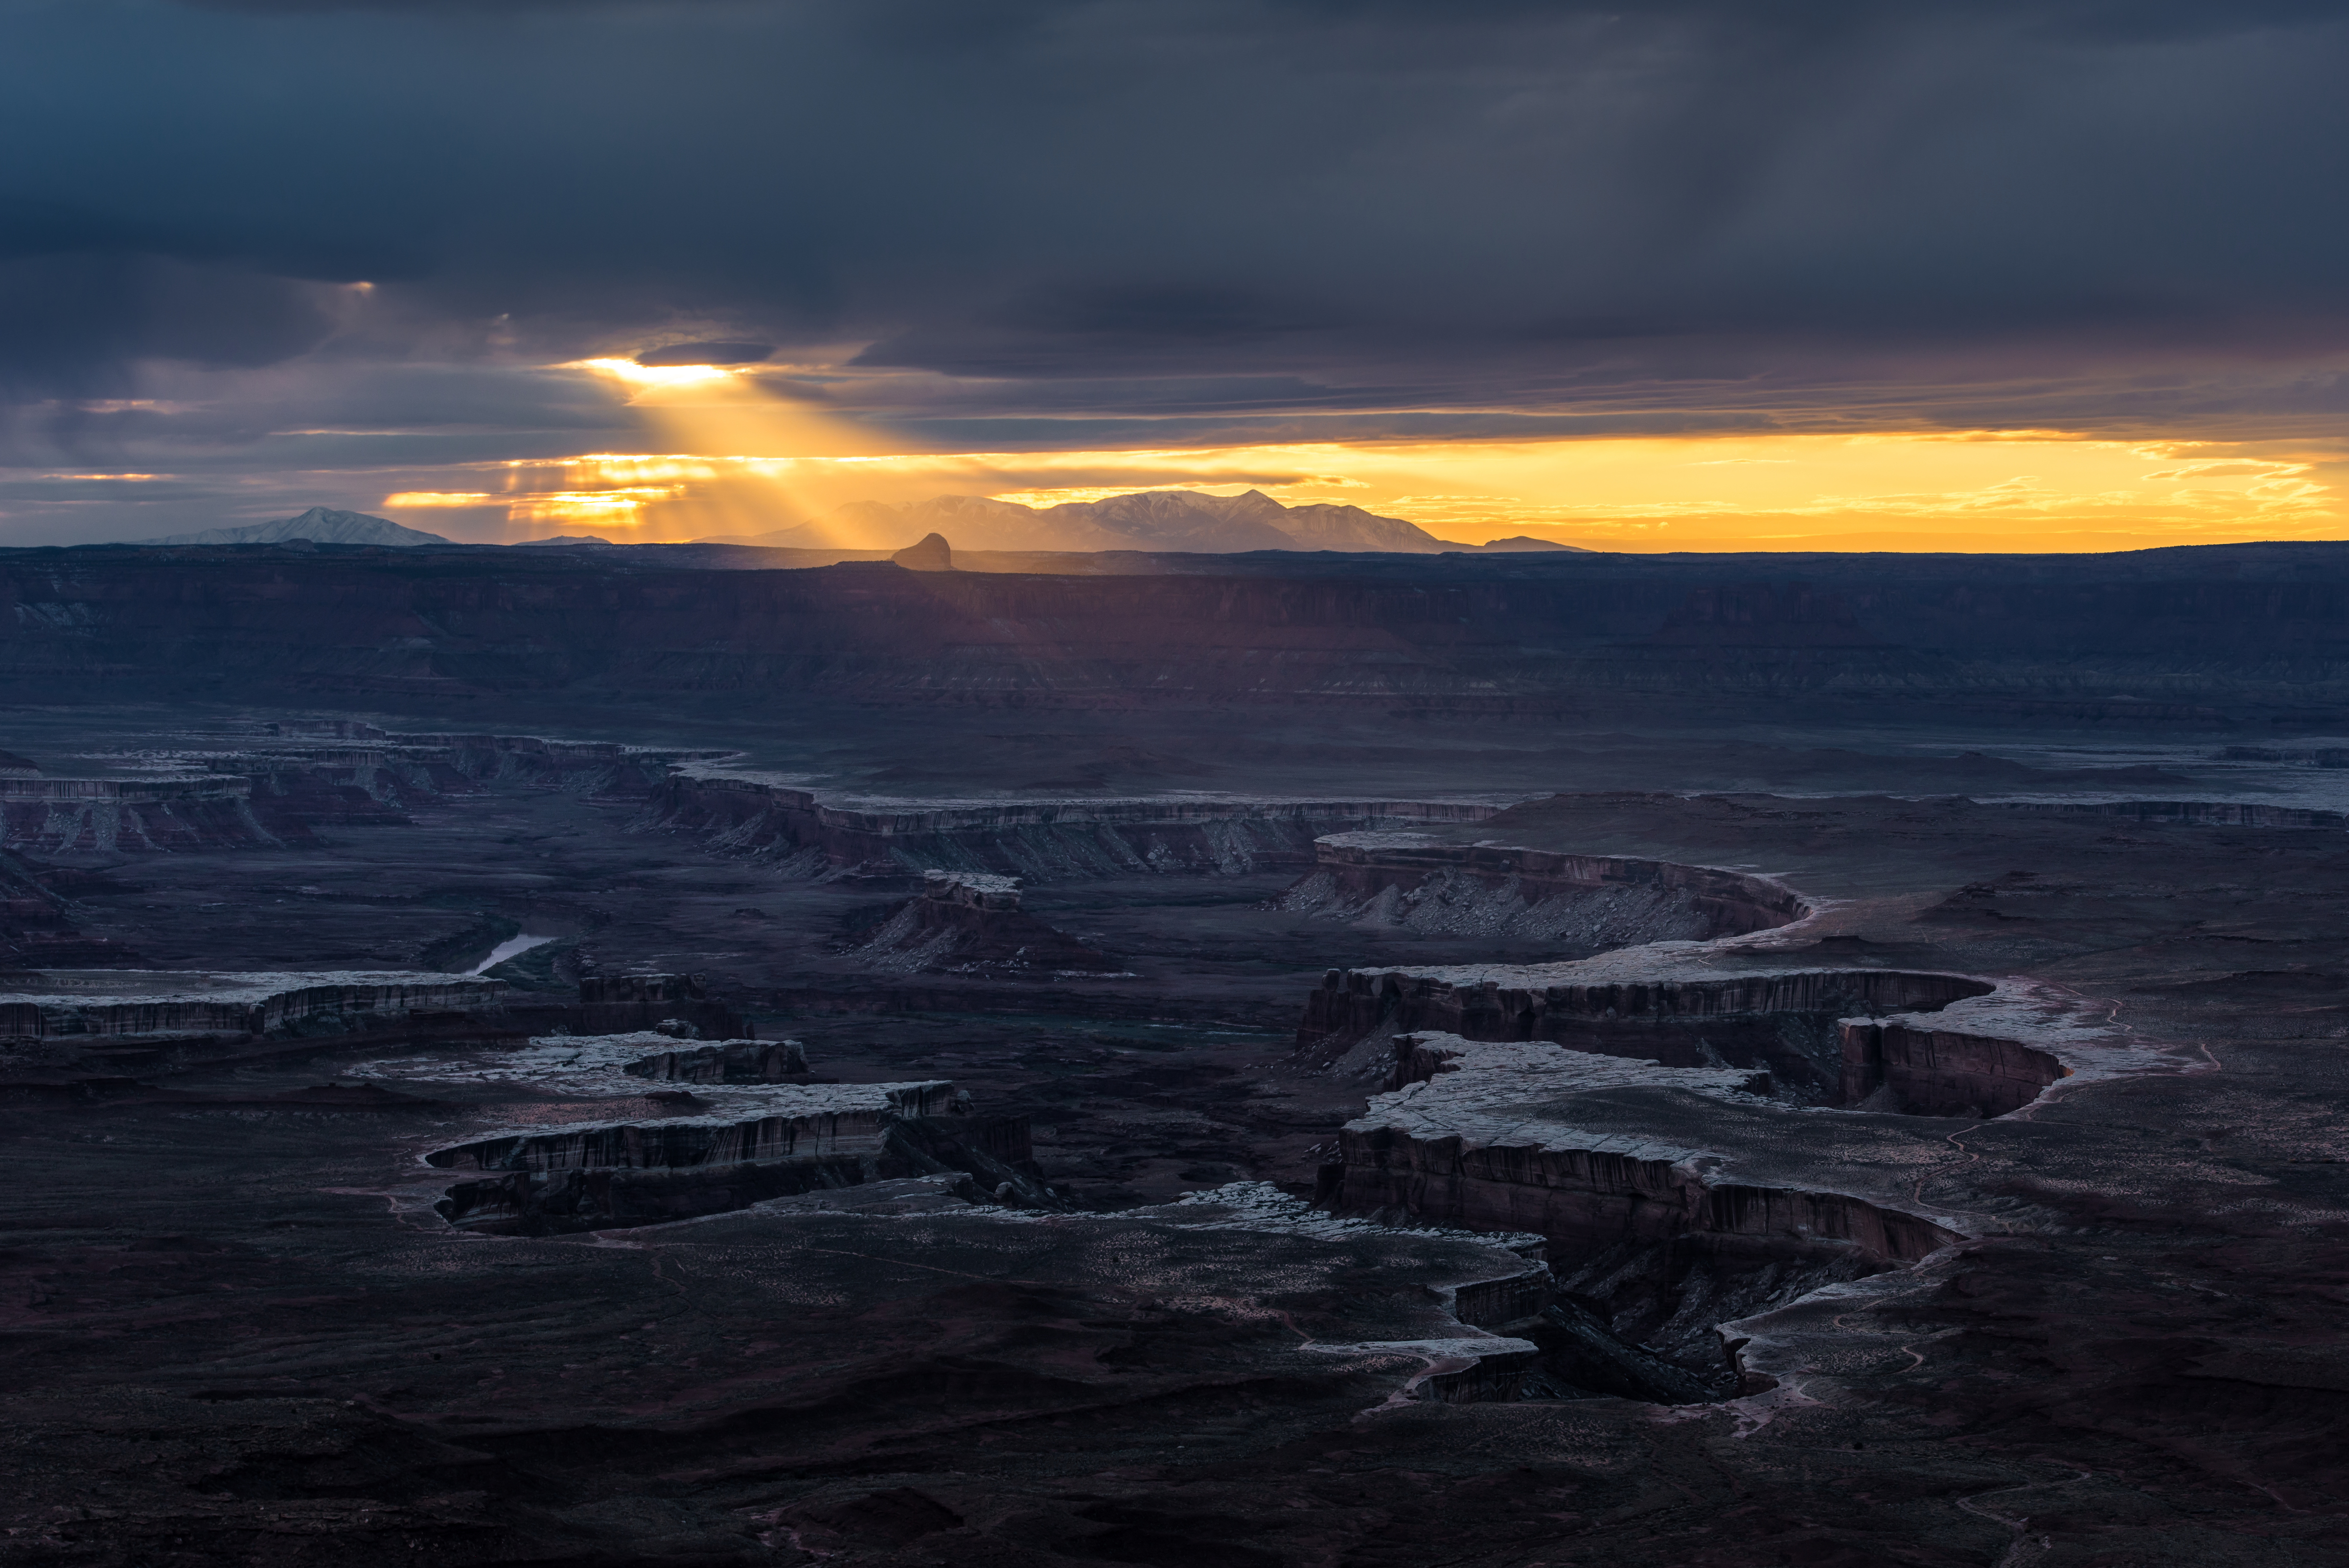 Sun beam comes through clouds over the White Rim Trail in Canyonlands National Park, Utah